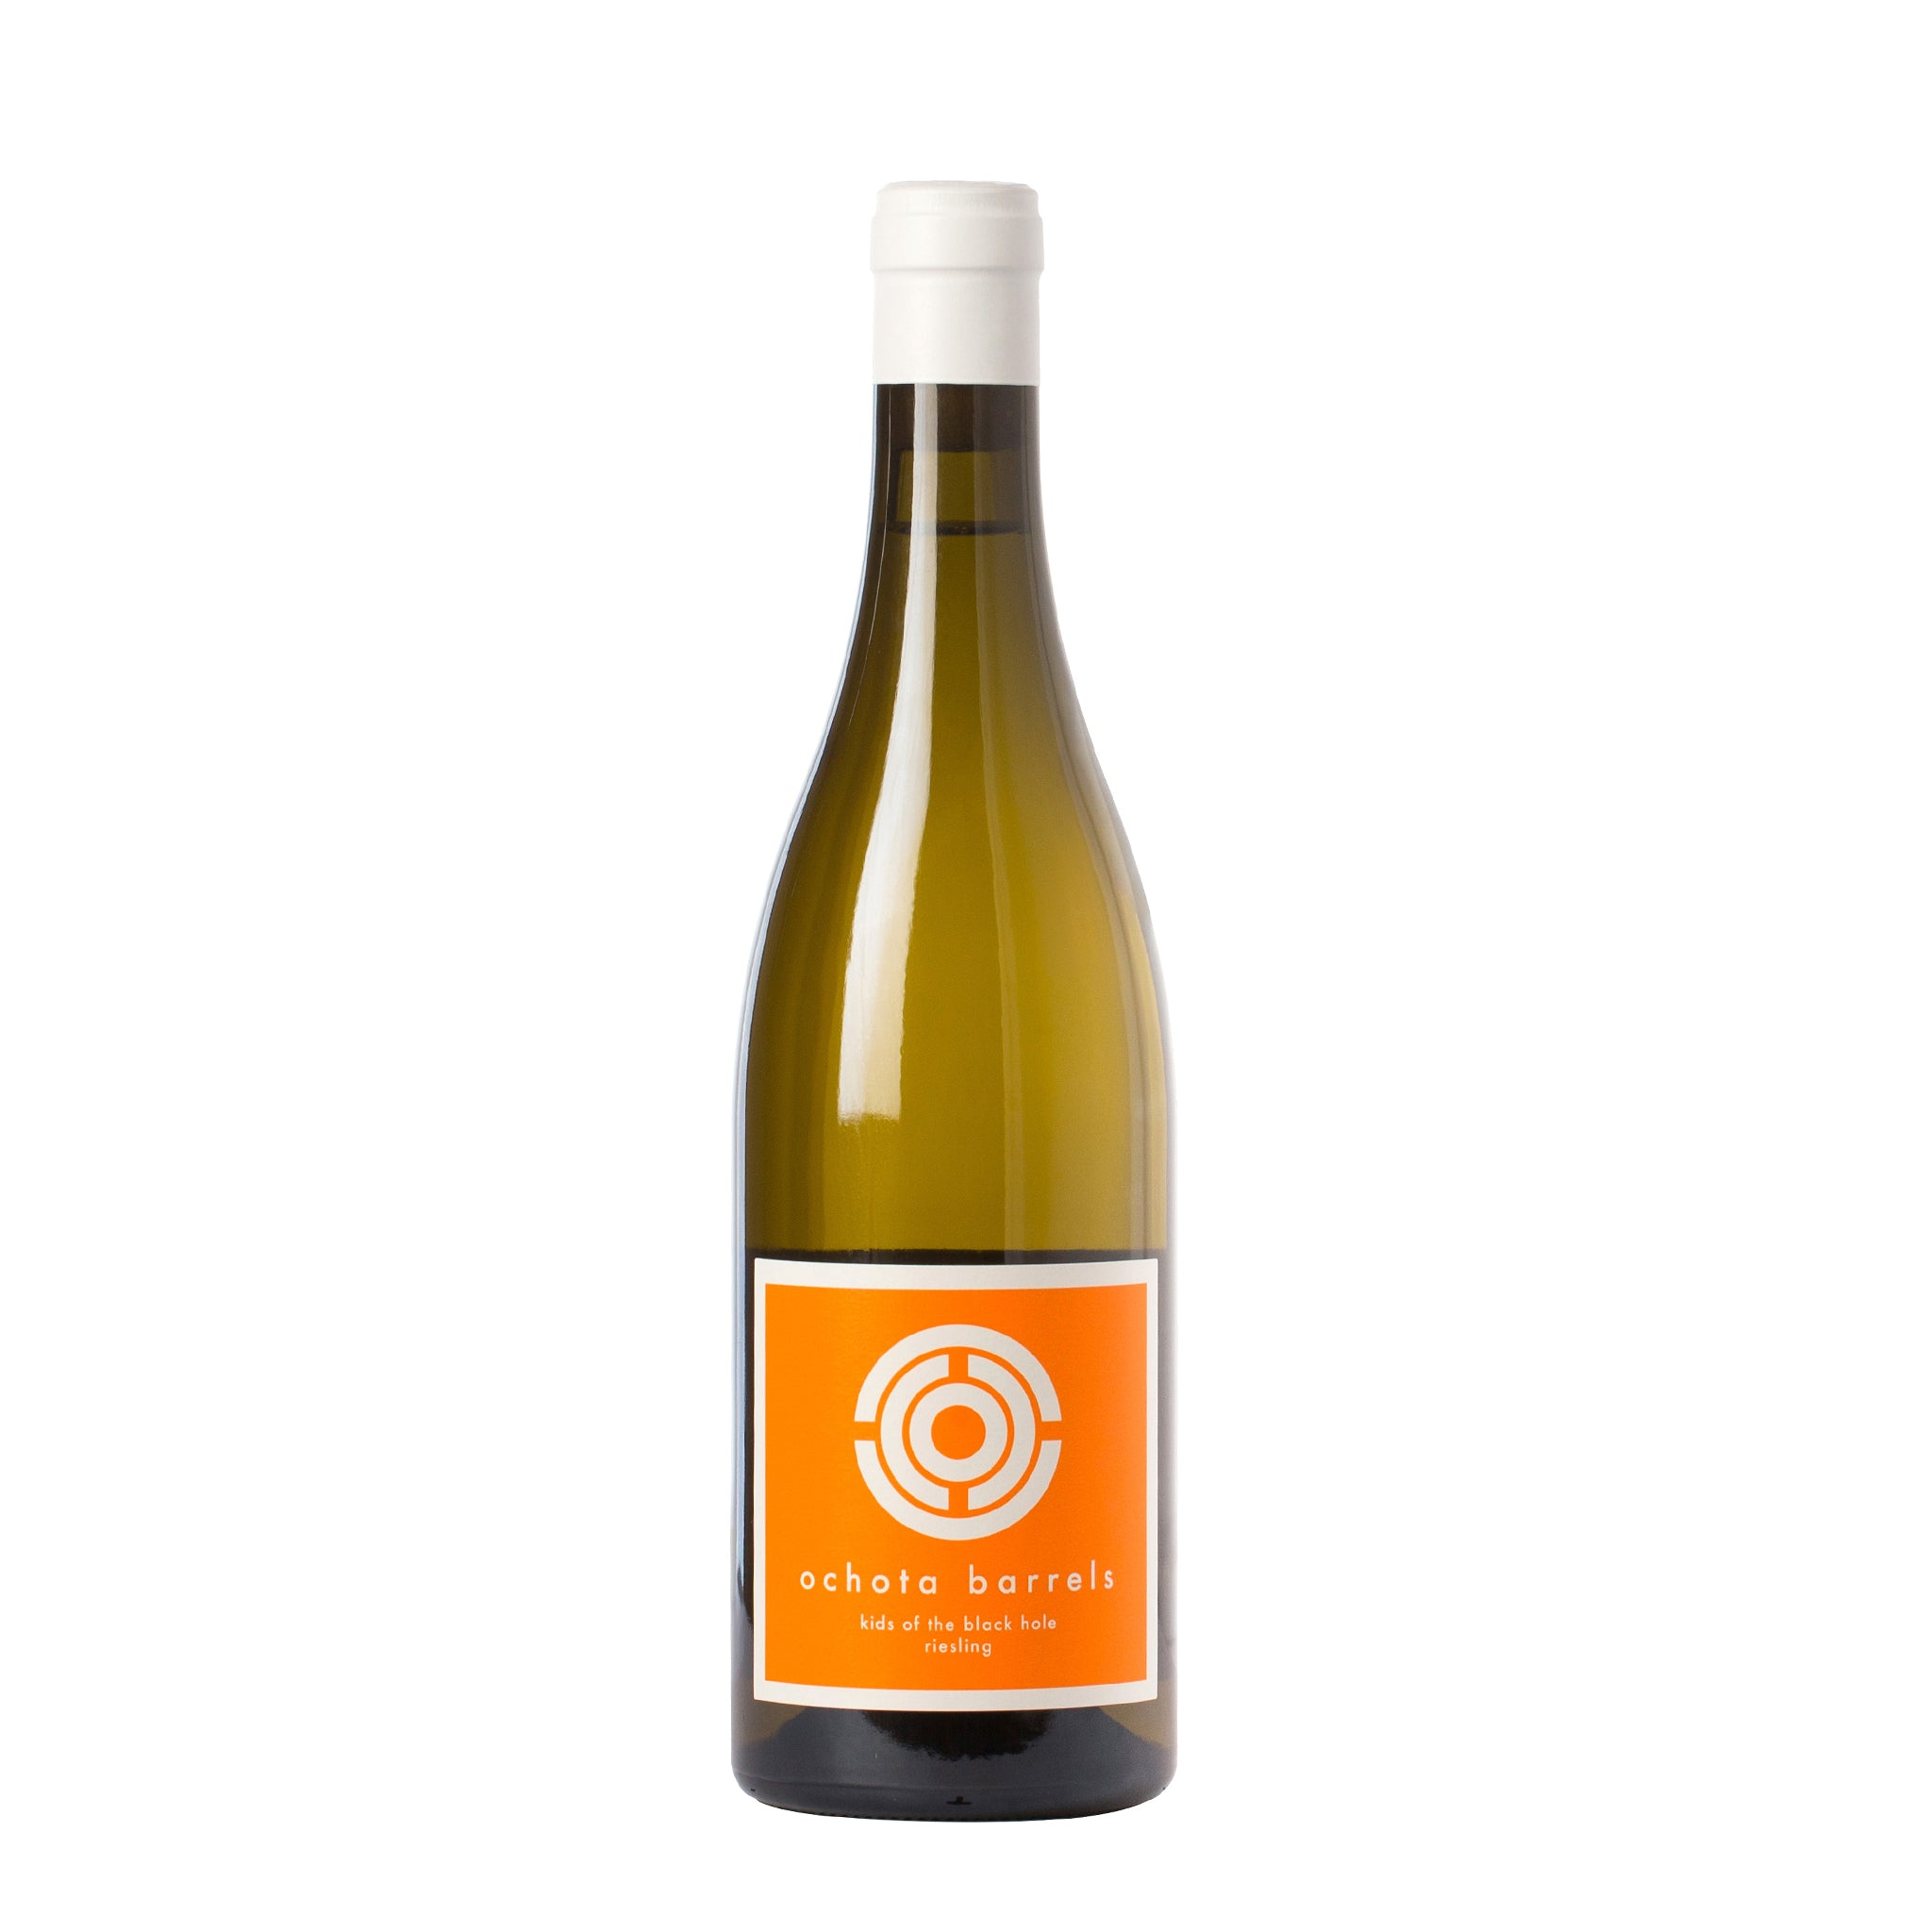 Ochota Barrels Kids Of The Black Hole Riesling 2017 750ml